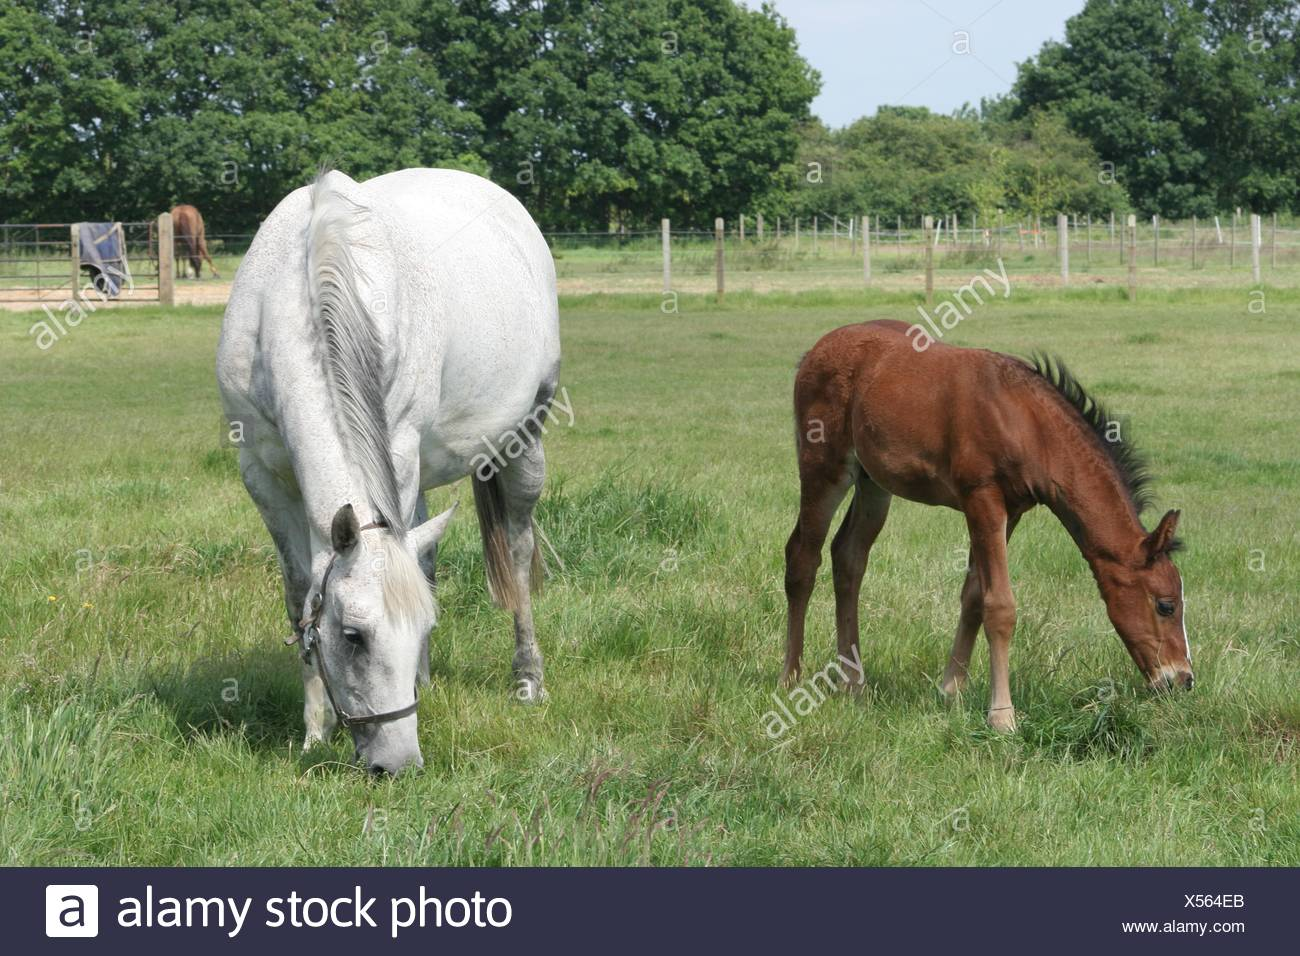 Horse Pony Mare Foal Young Younger Baby Horse Brown Brownish Stock Photo Alamy